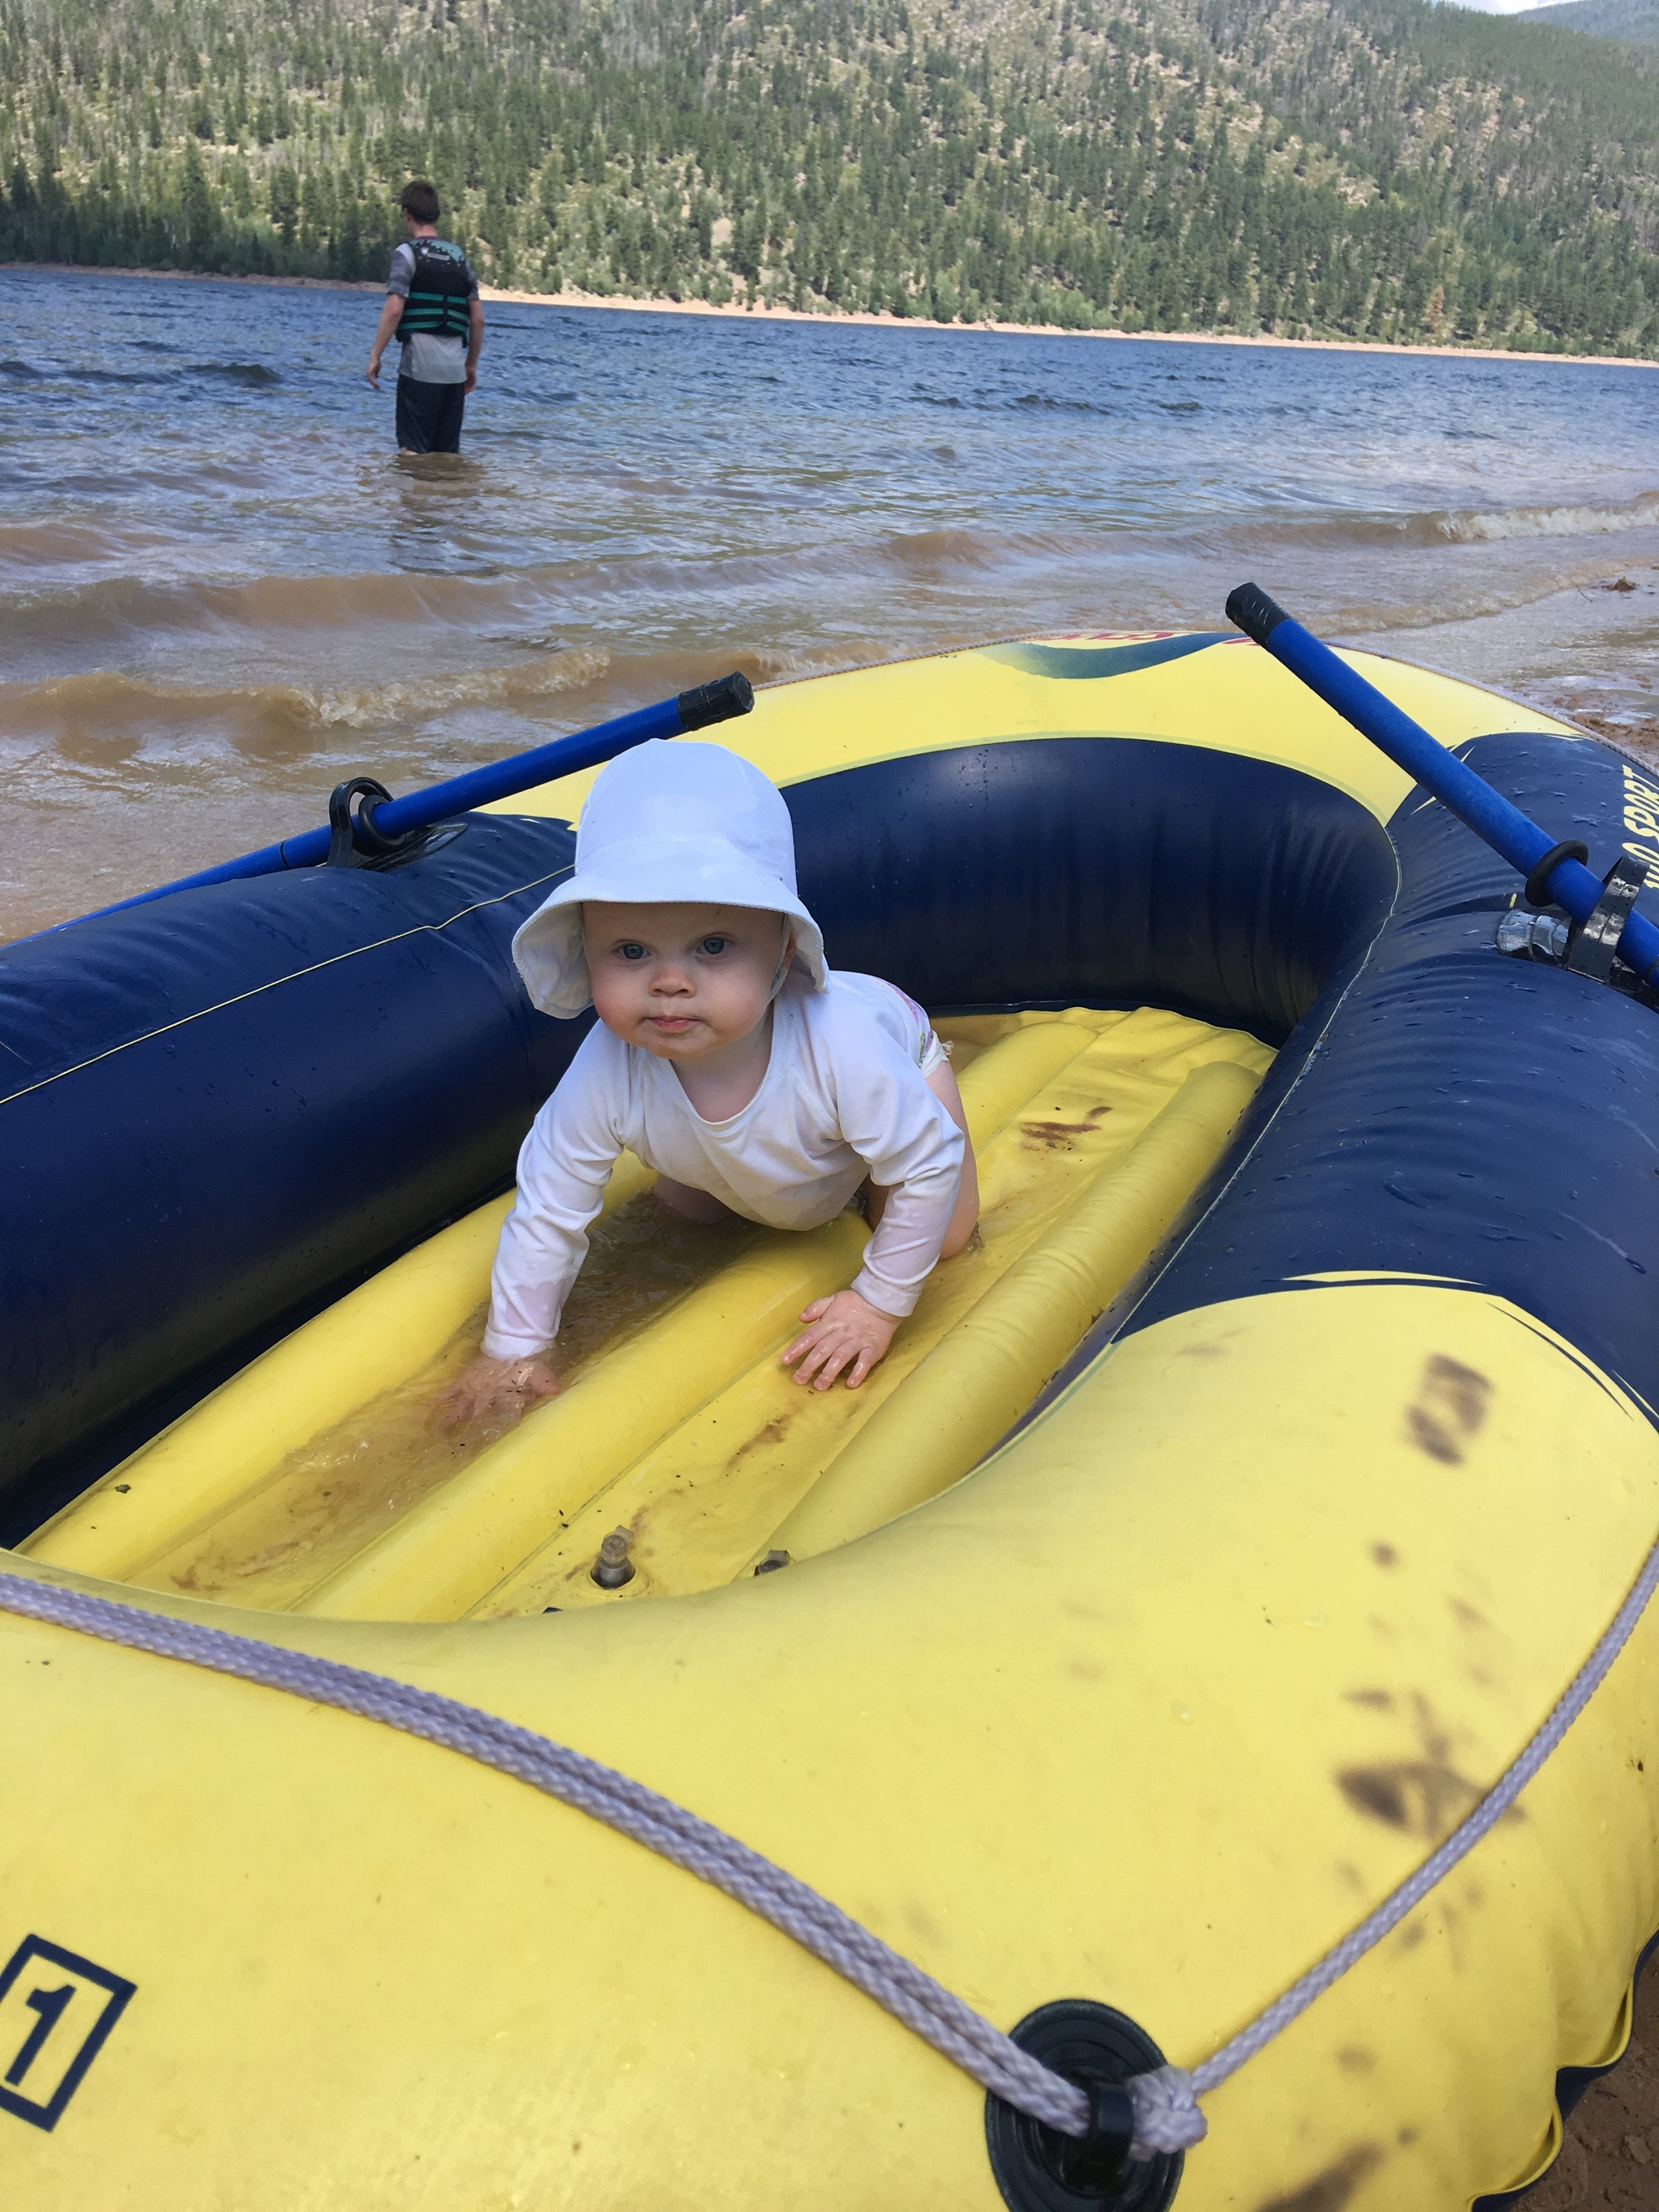 She was all about crawling in the raft